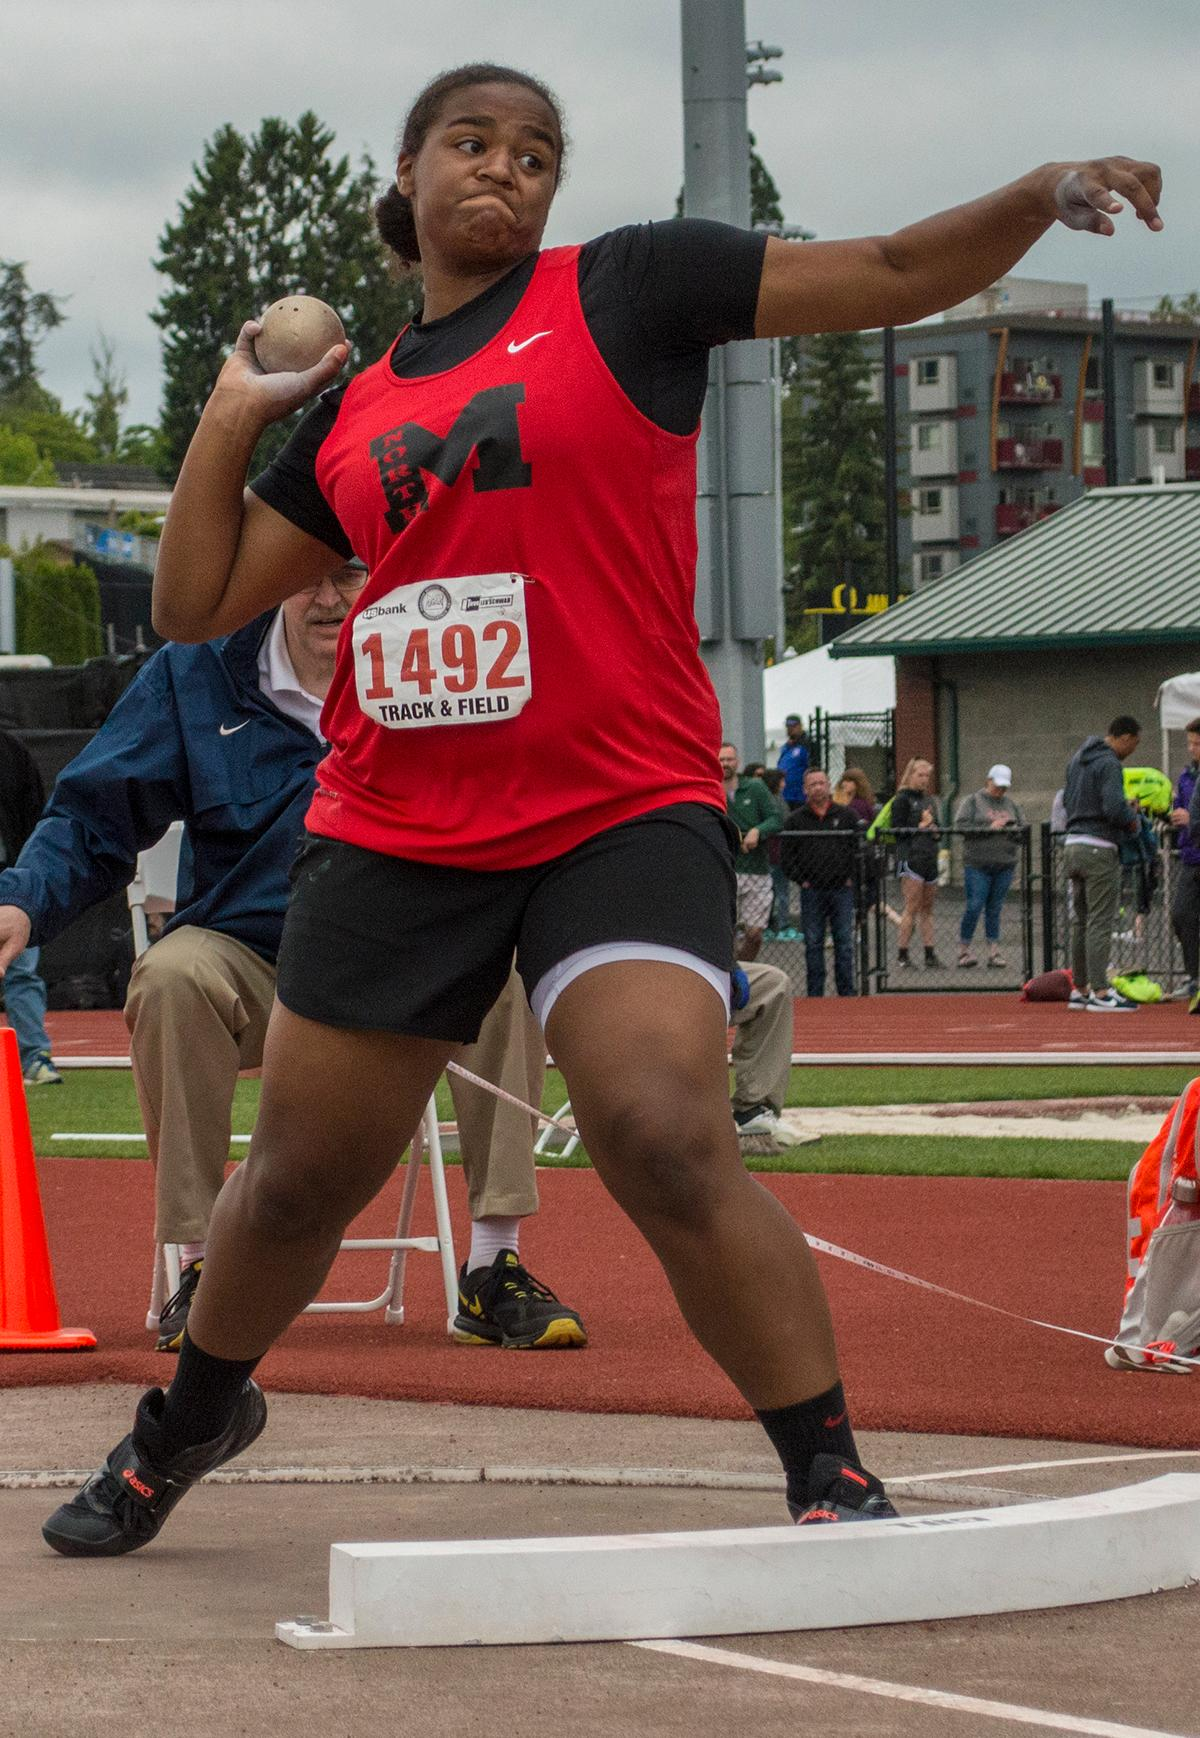 North Medford High School's Jaida Ross wins the 6A Girls Shotput event at the OSAA Track and Field Championships at Hayward Field with a mark of 43-07.75. Photo by Emily Gonzalez, Oregon News Lab.